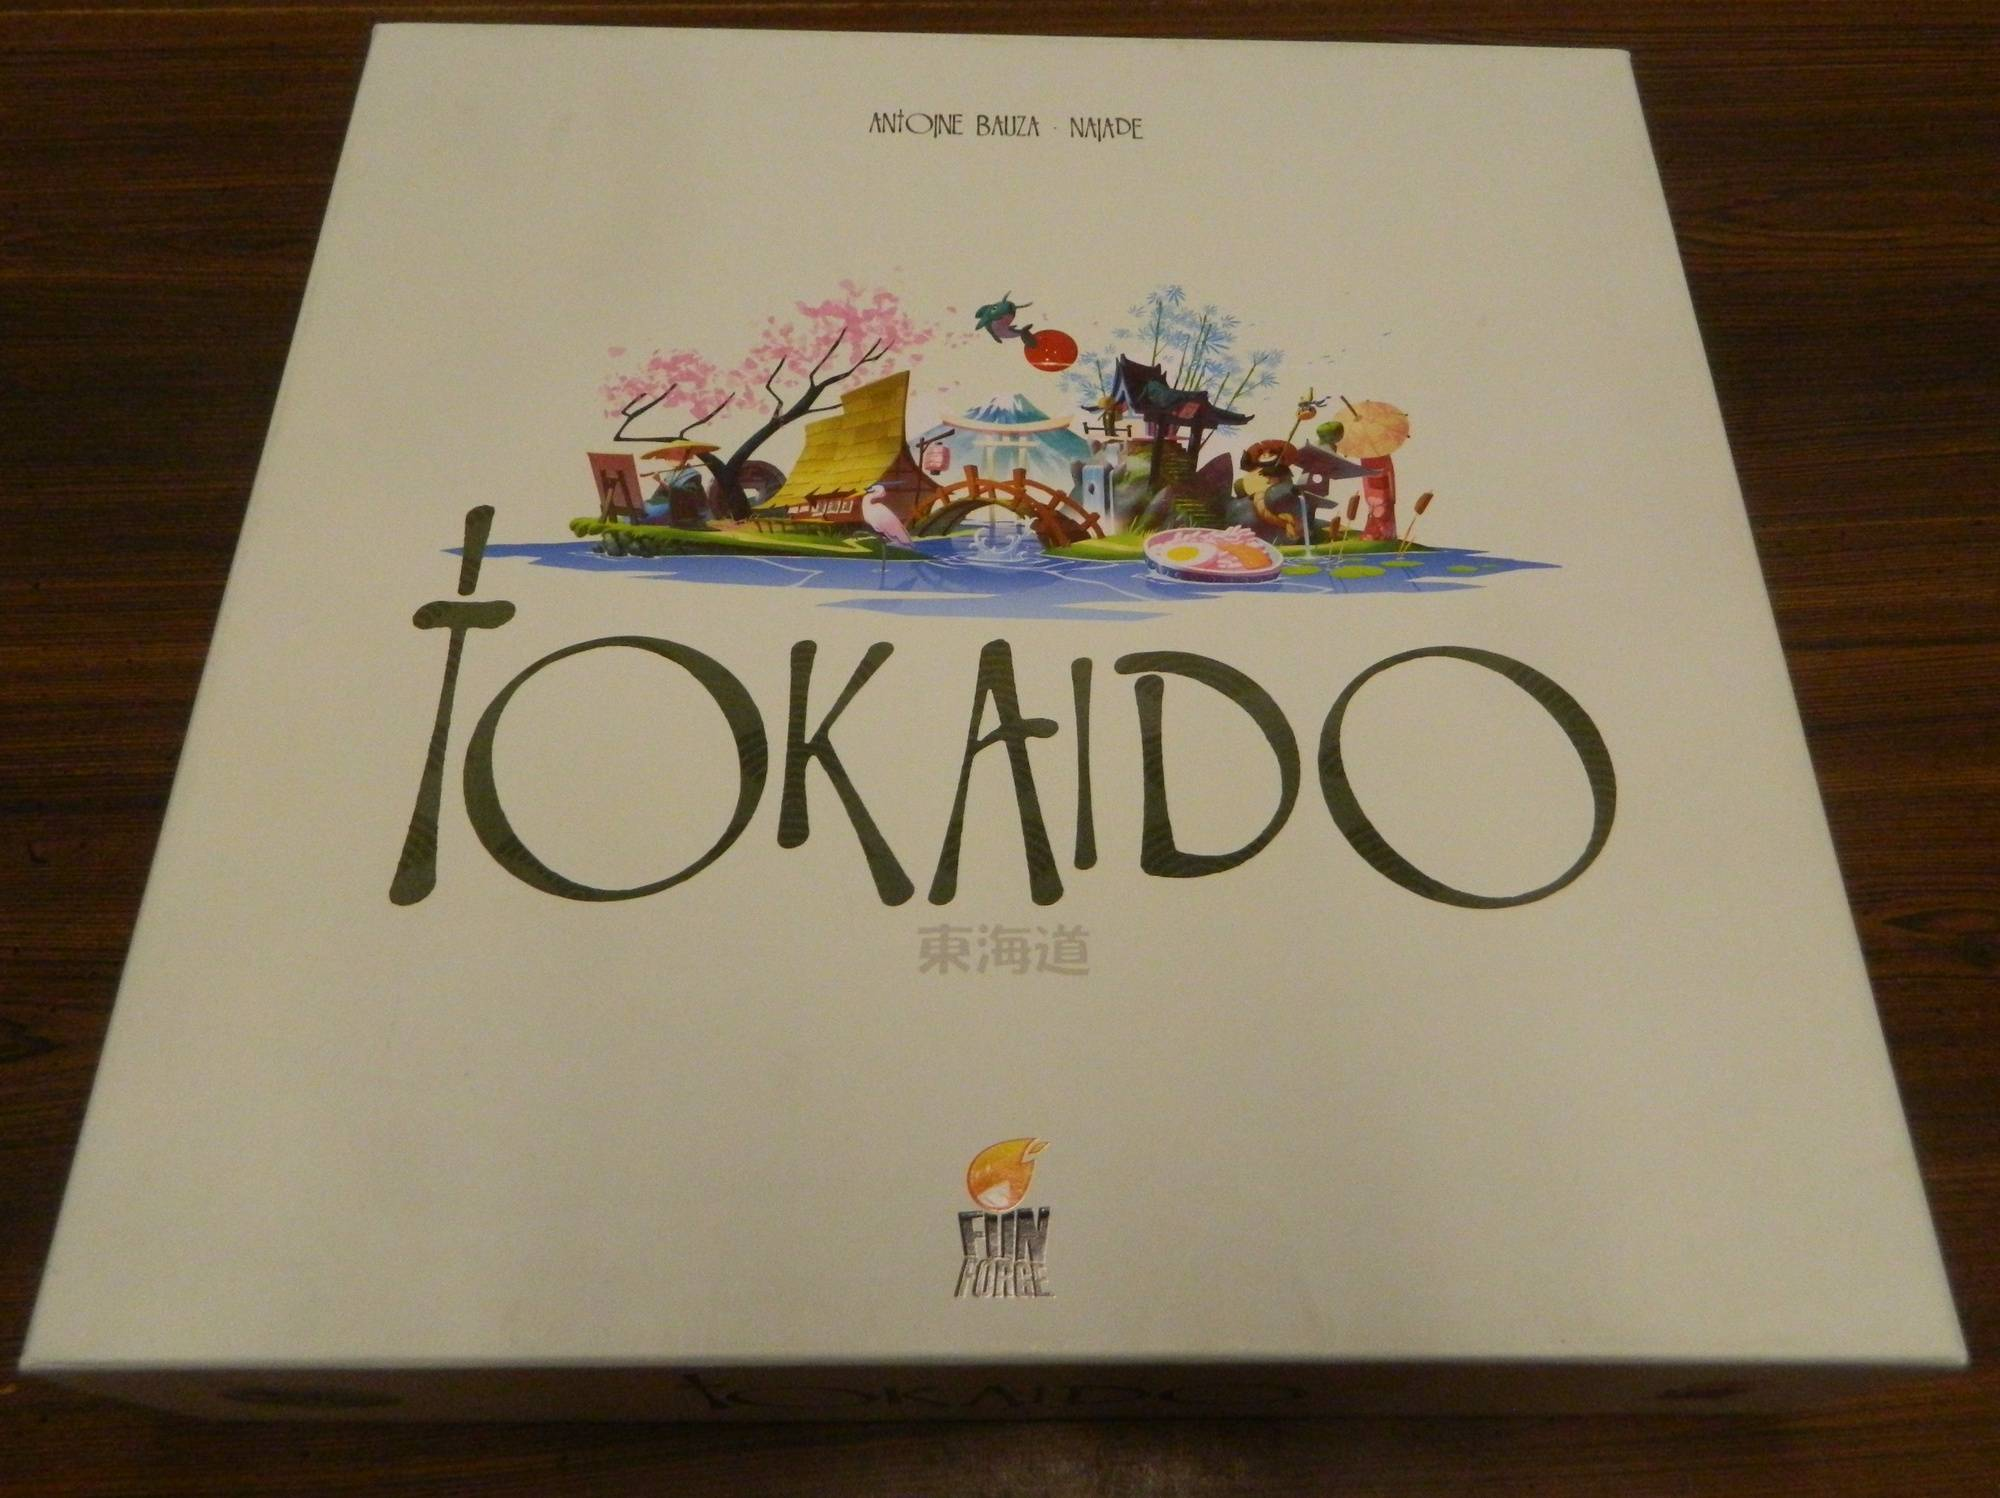 Box for Tokaido